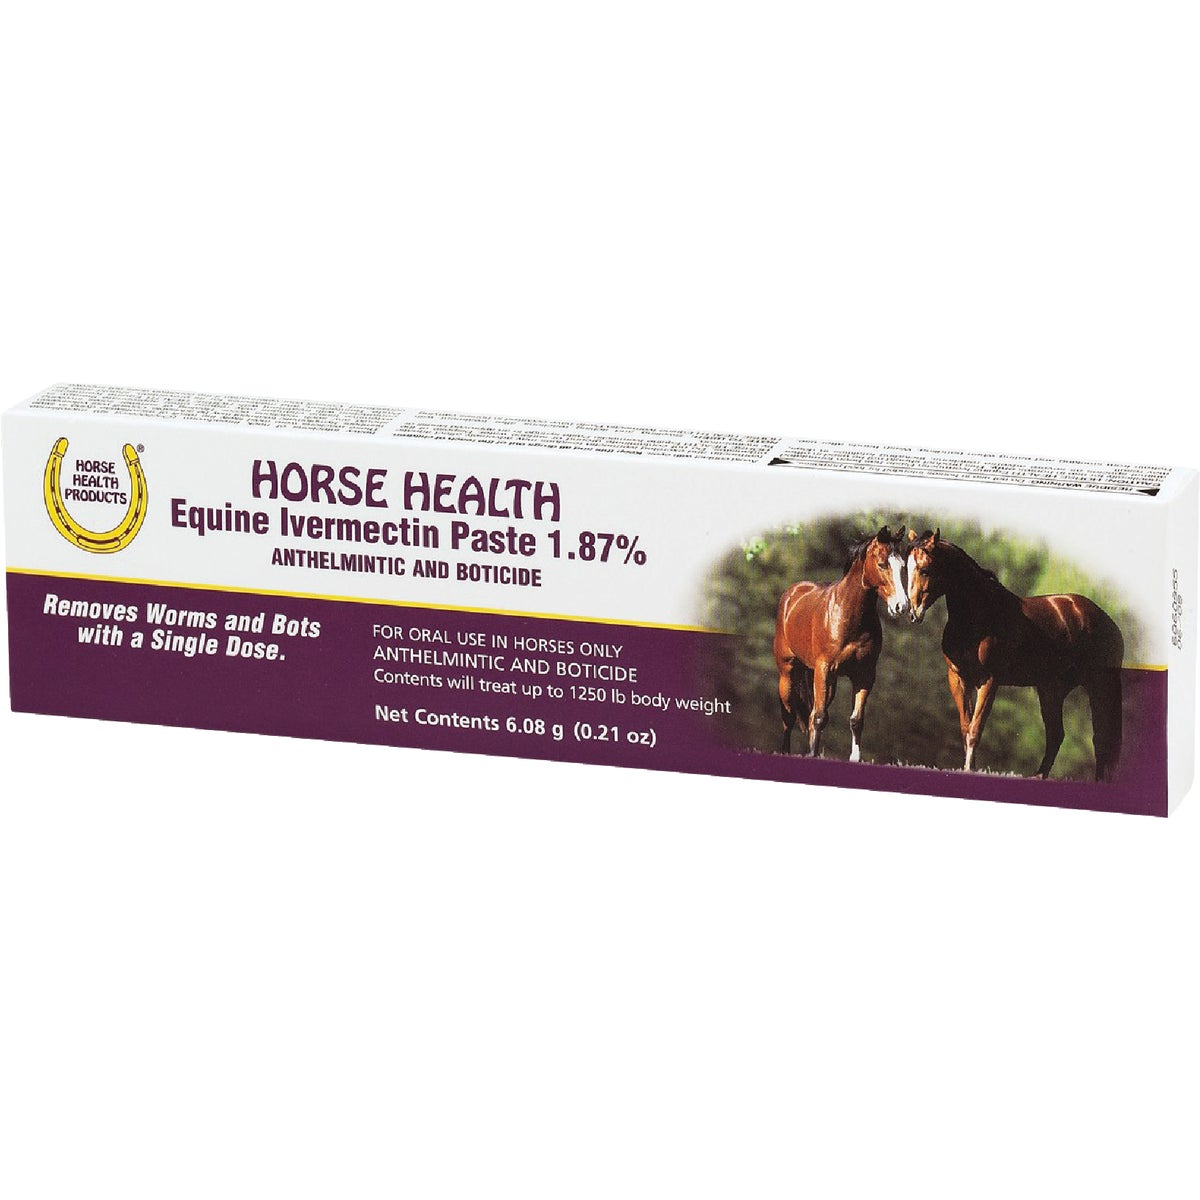 HORSE HEALTH IVERMECTIN - 100503595 by Farnam Central Life